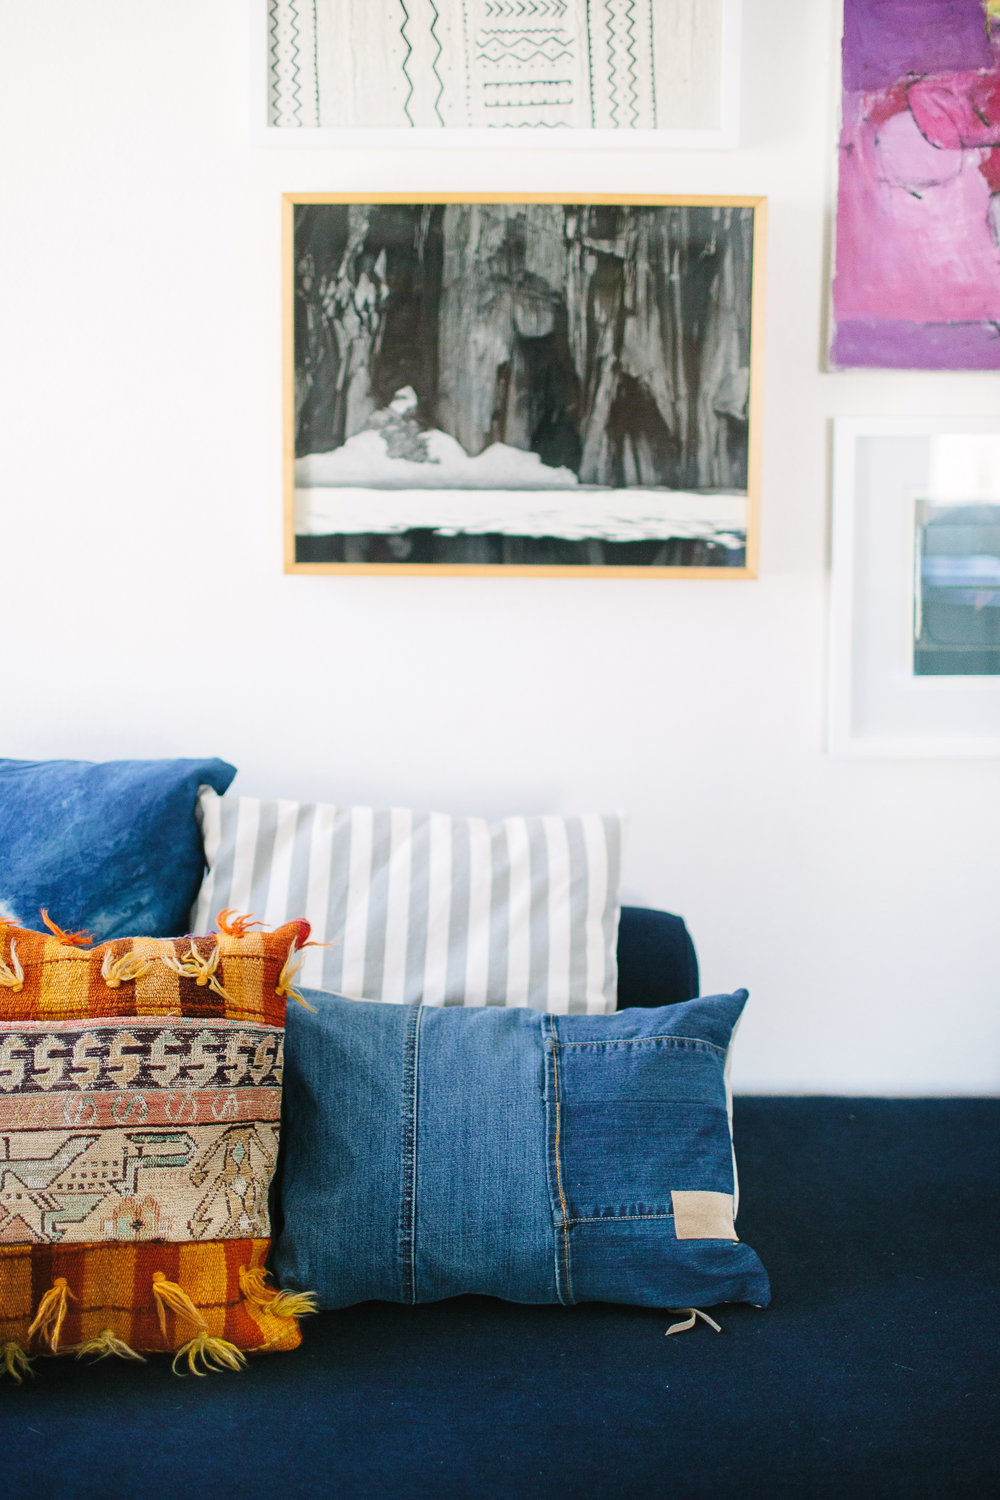 Pillow cover by Lasso Abode